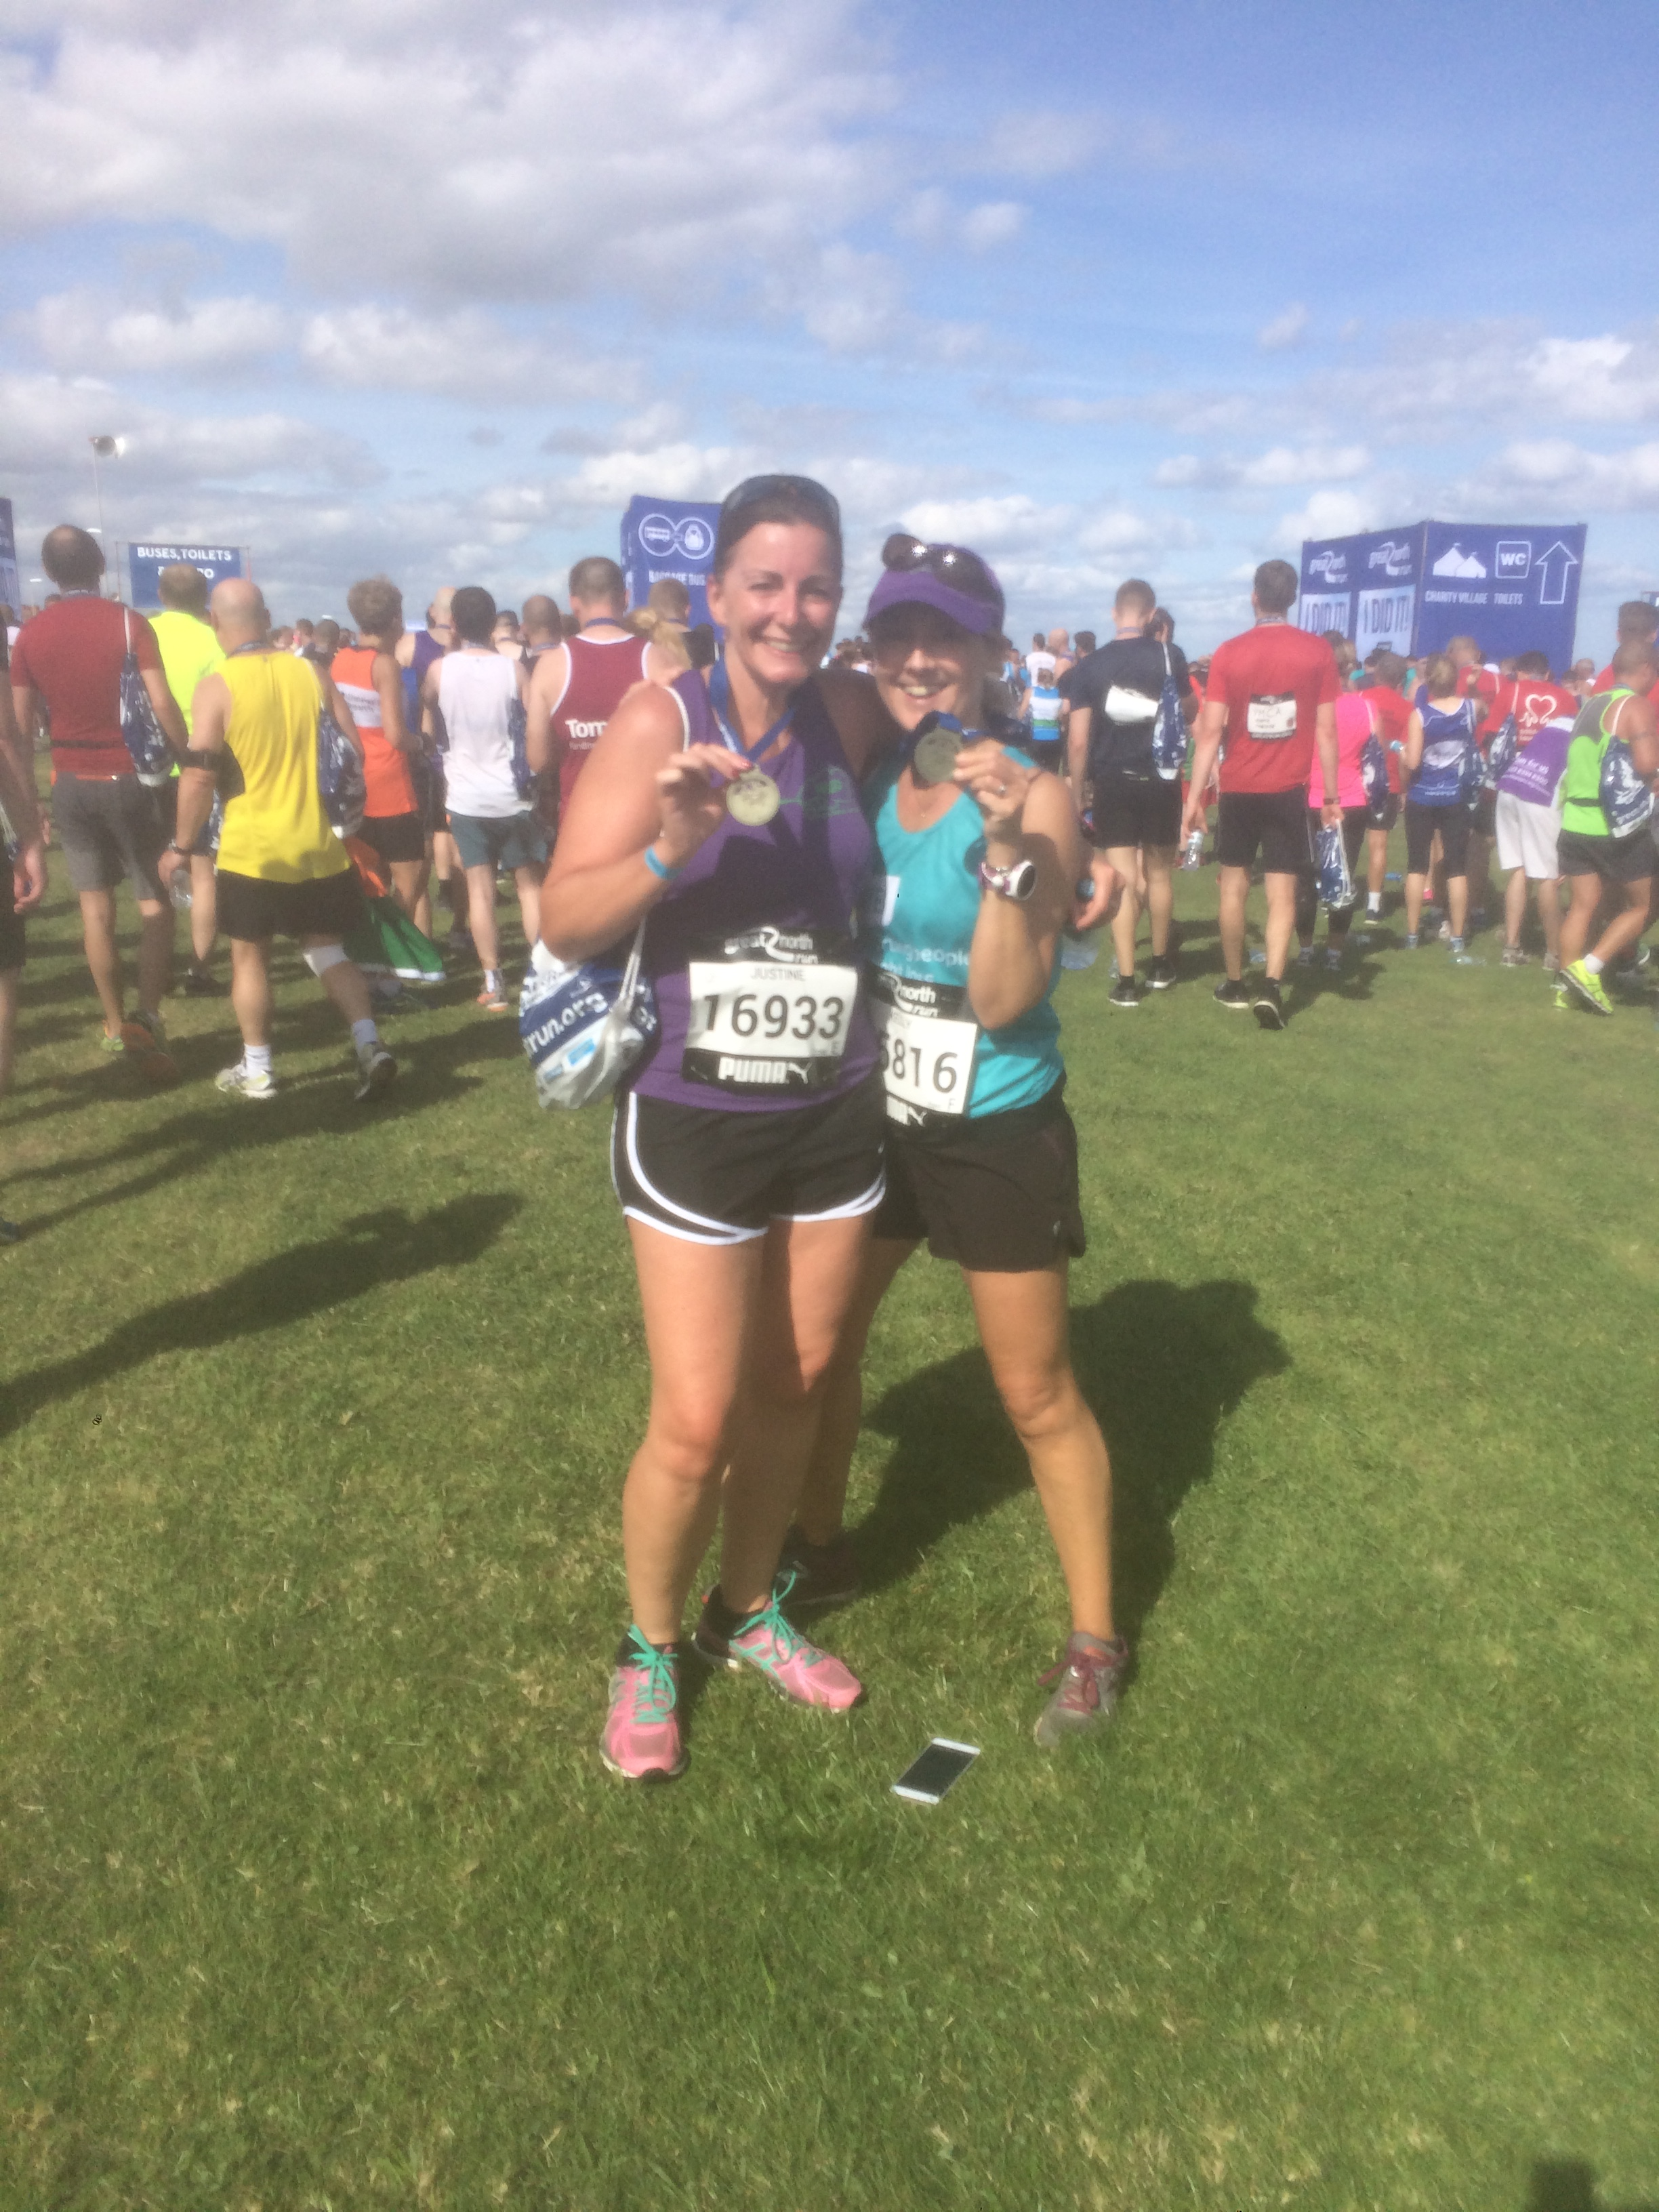 NWR at the Great North Run 2016